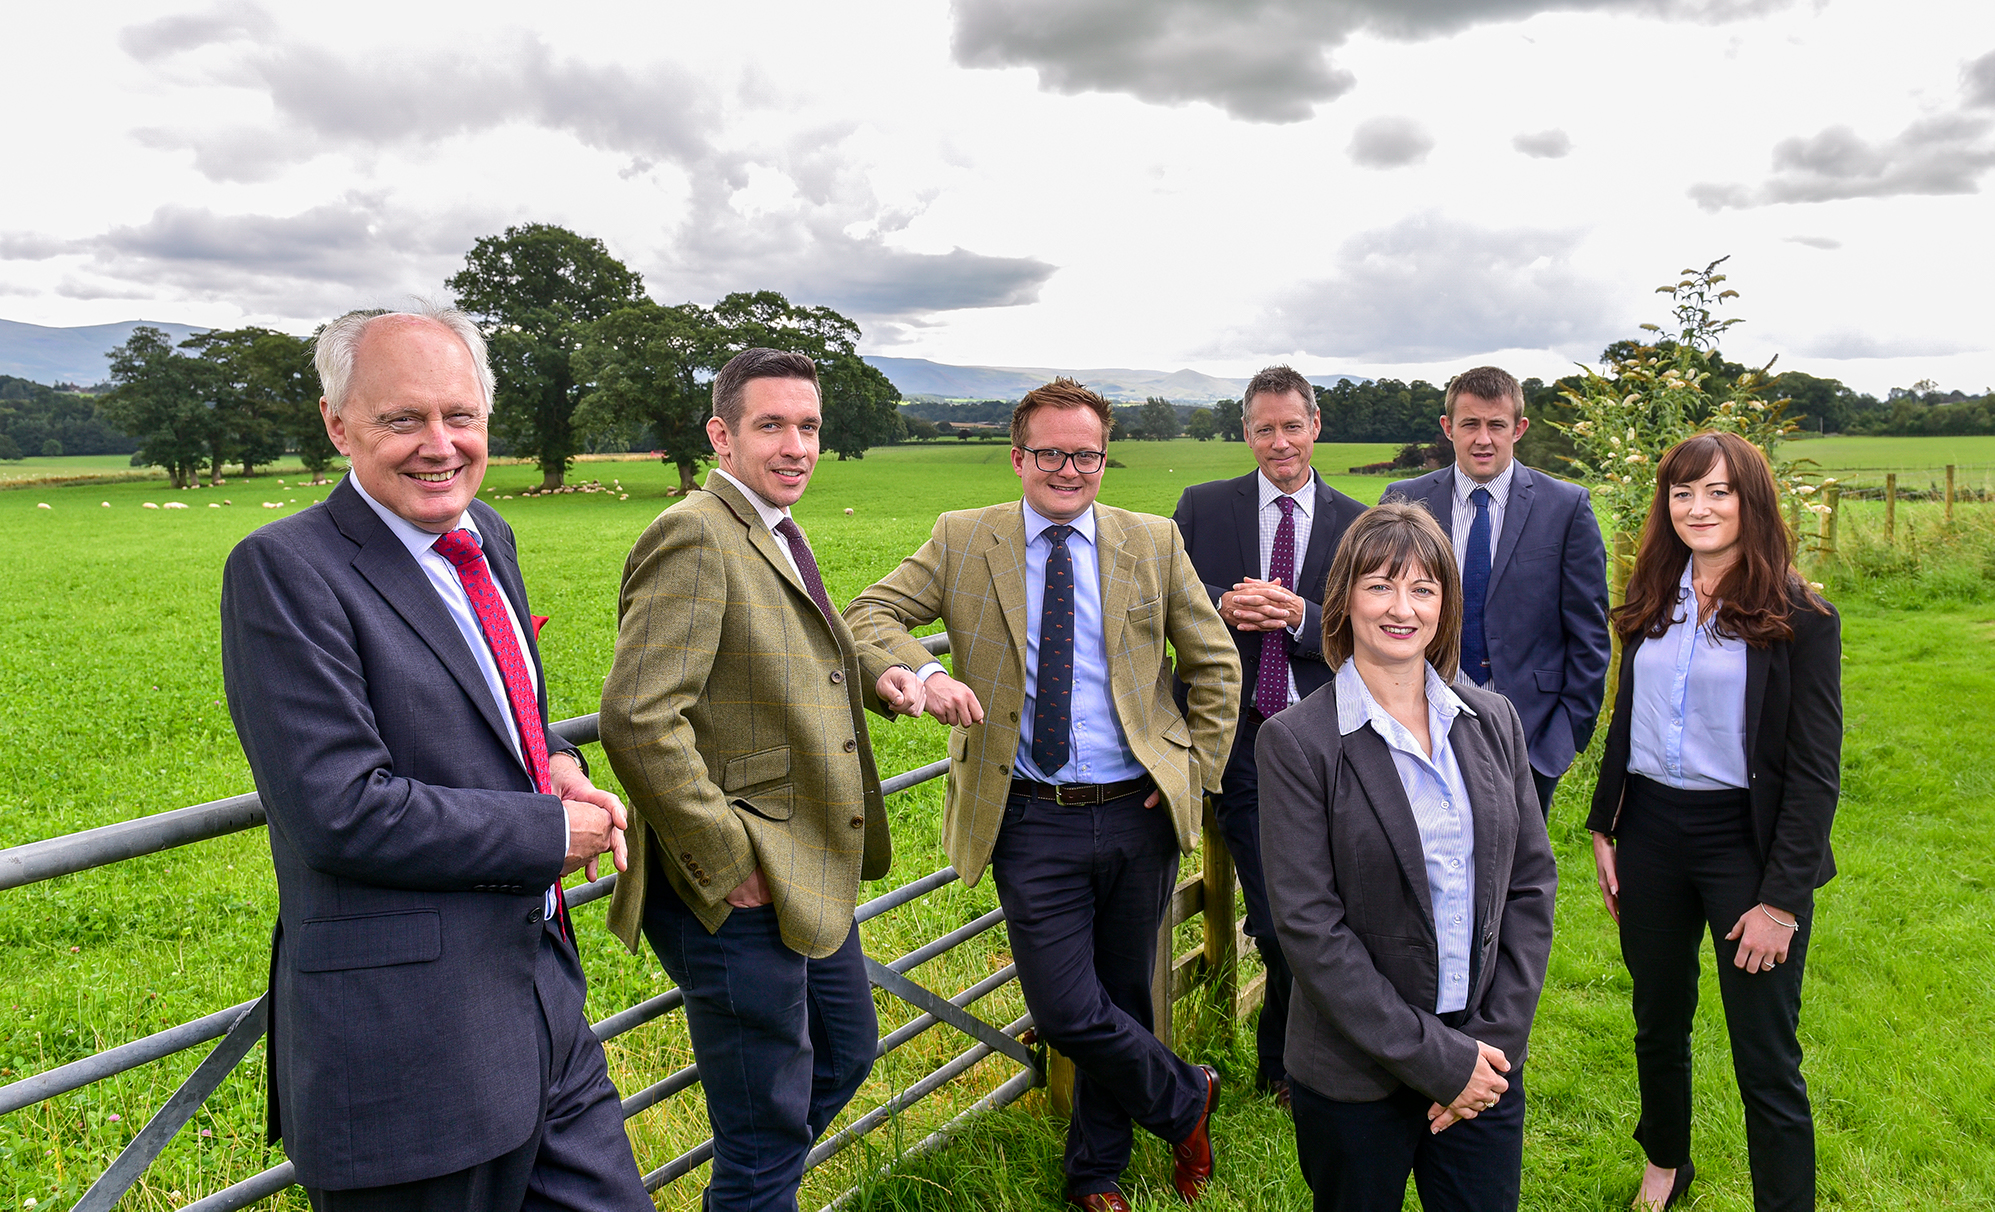 H&H Group PLC announces Northern rebrand